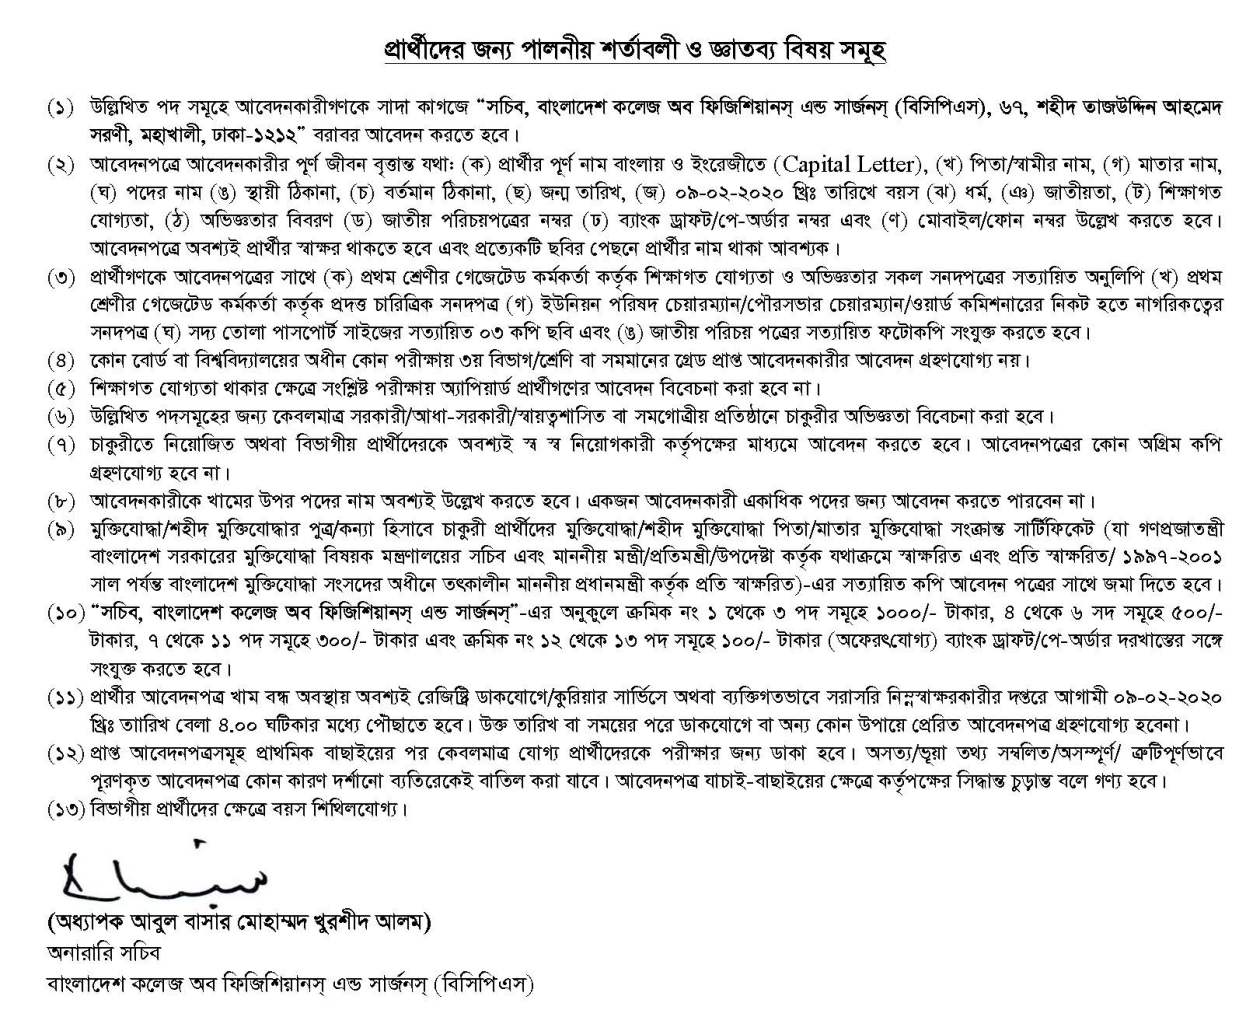 Bangladesh College of Physicians and Surgeons